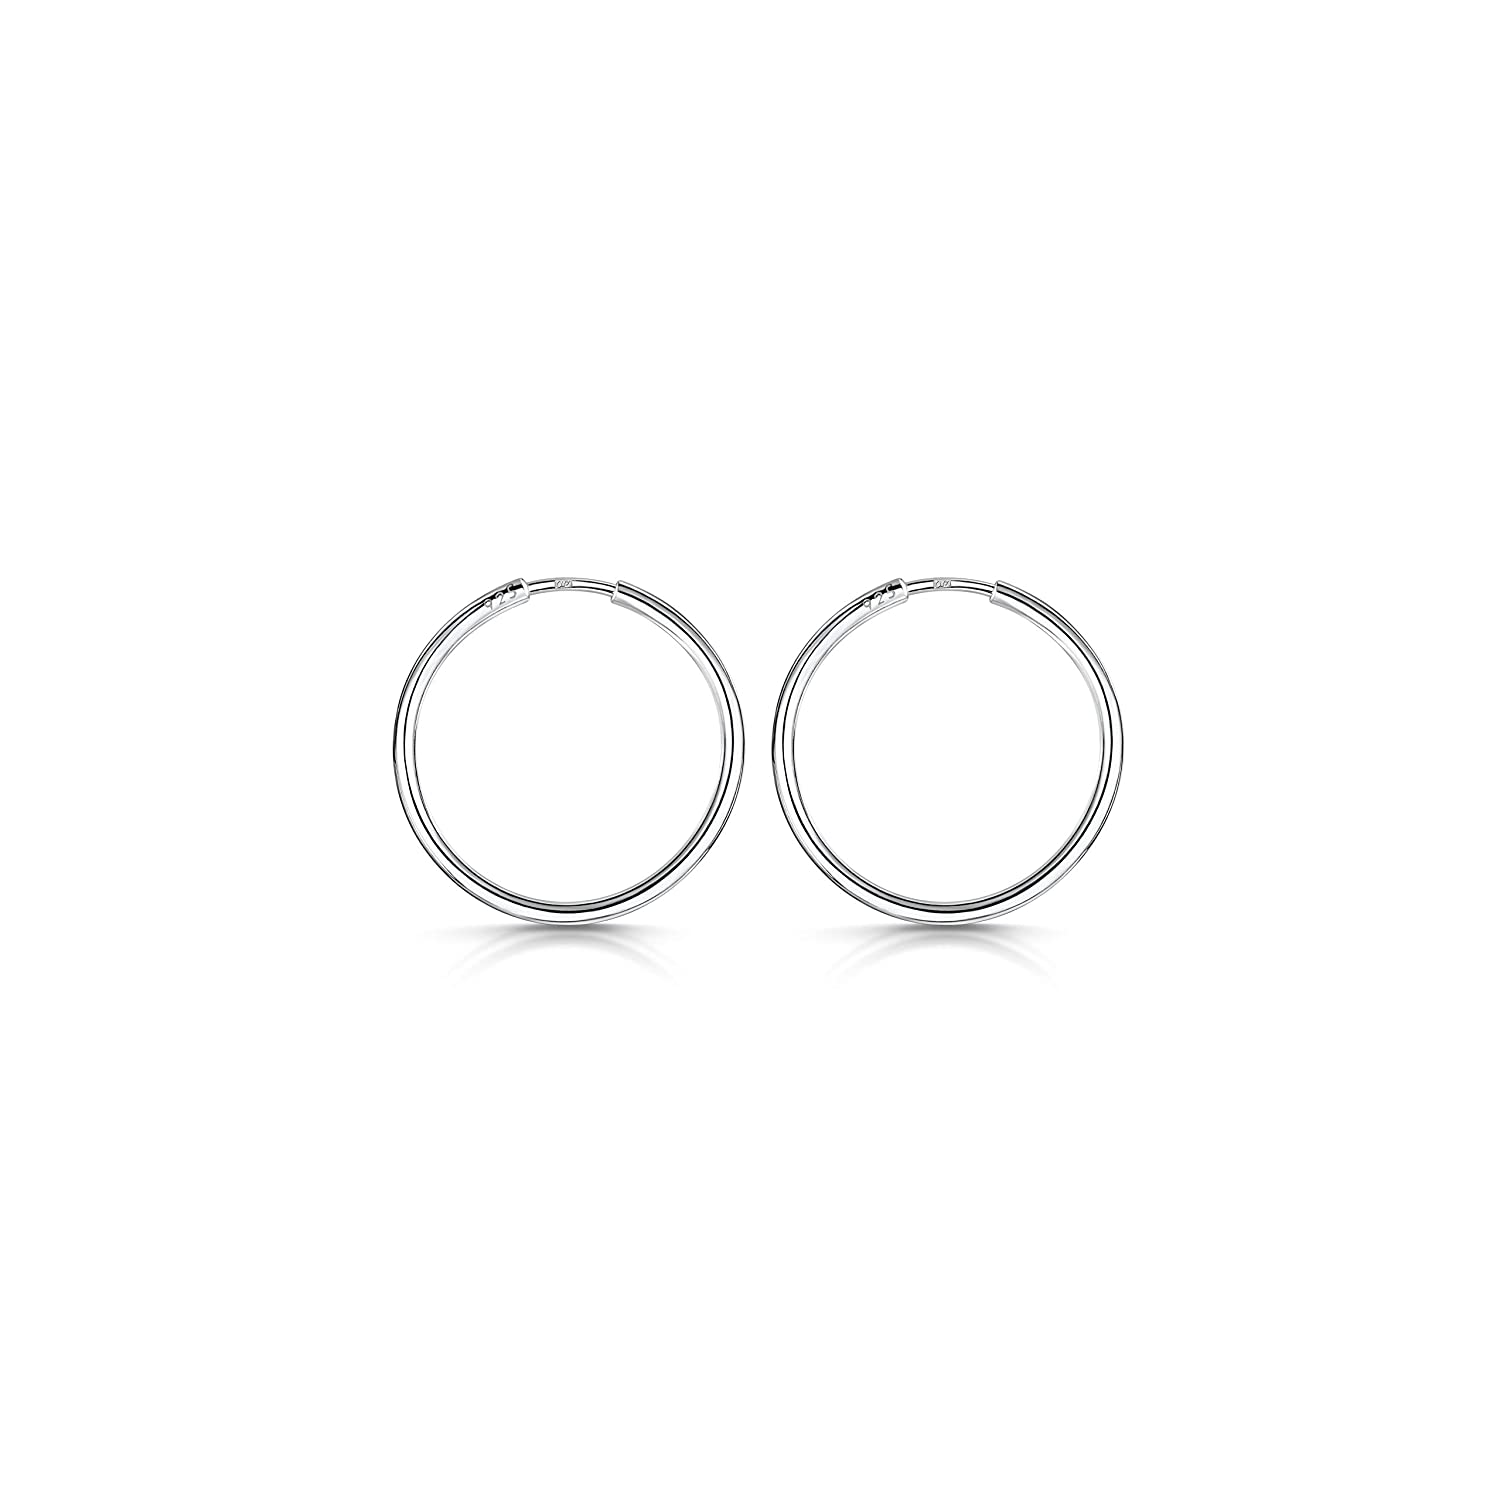 bcbf542f1 Amazon.com: Amberta 925 Sterling Silver Fine Circle Endless Hoops - Polished  Round Sleeper Earrings Diameter Size: 20 30 40 60 80 mm (20mm): Jewelry